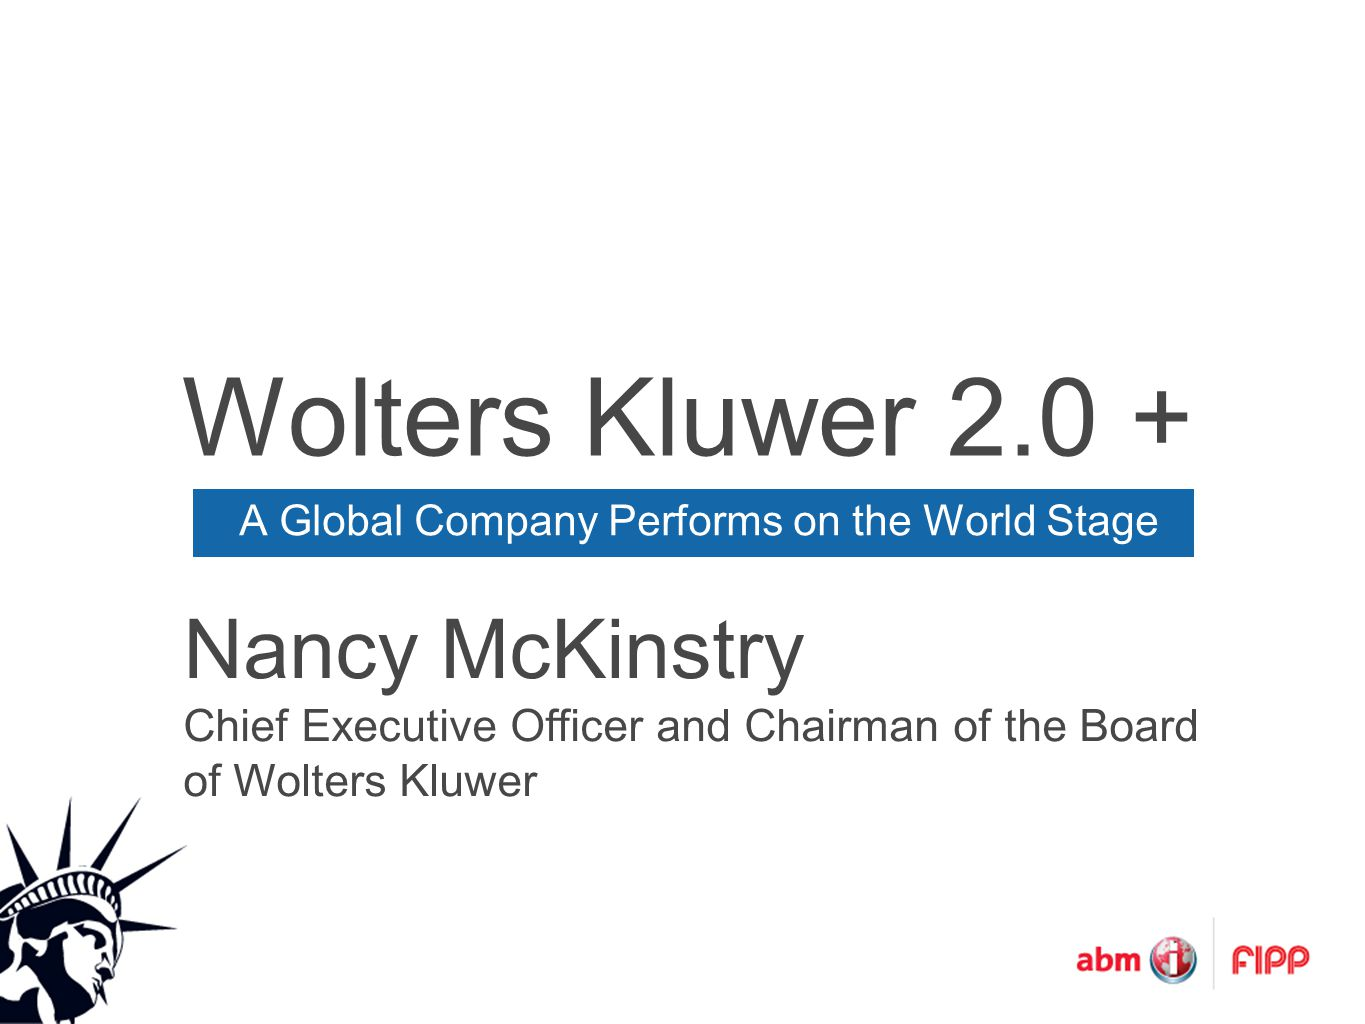 Wolters Kluwer 2.0 + A Global Company Performs on the World Stage Nancy McKinstry Chief Executive Officer and Chairman of the Board of Wolters Kluwer